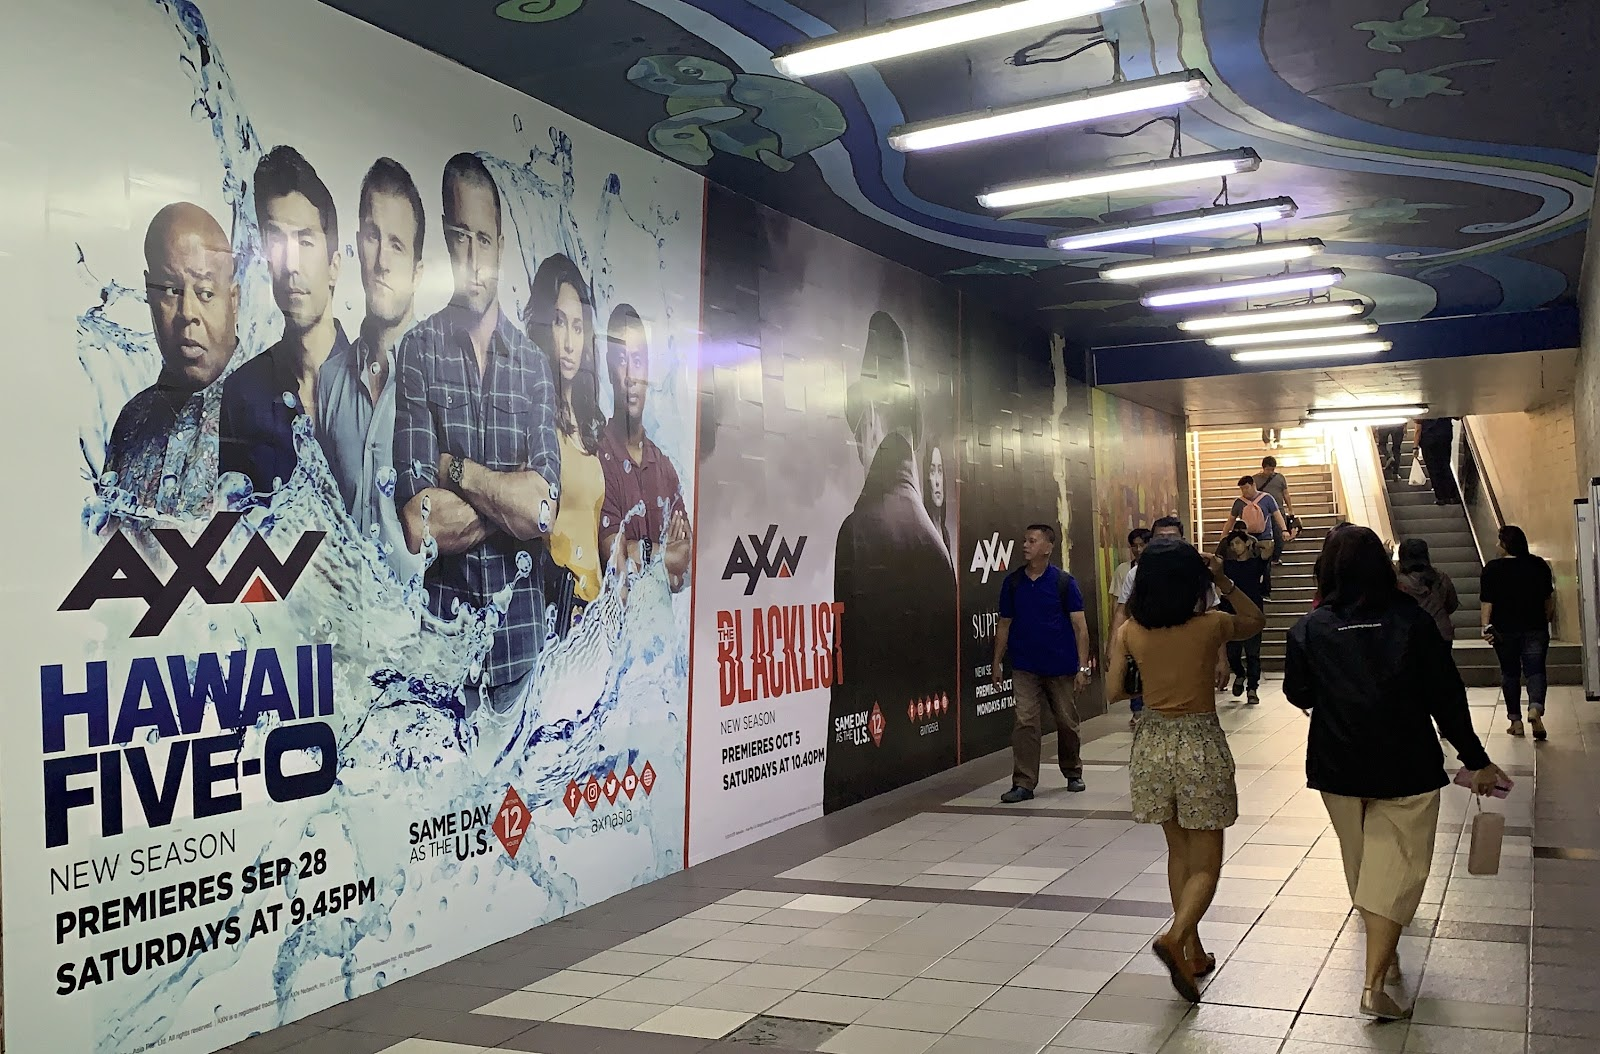 Sony AXN out of home advertisement ayala paseo underpass rsco 2019 philippines